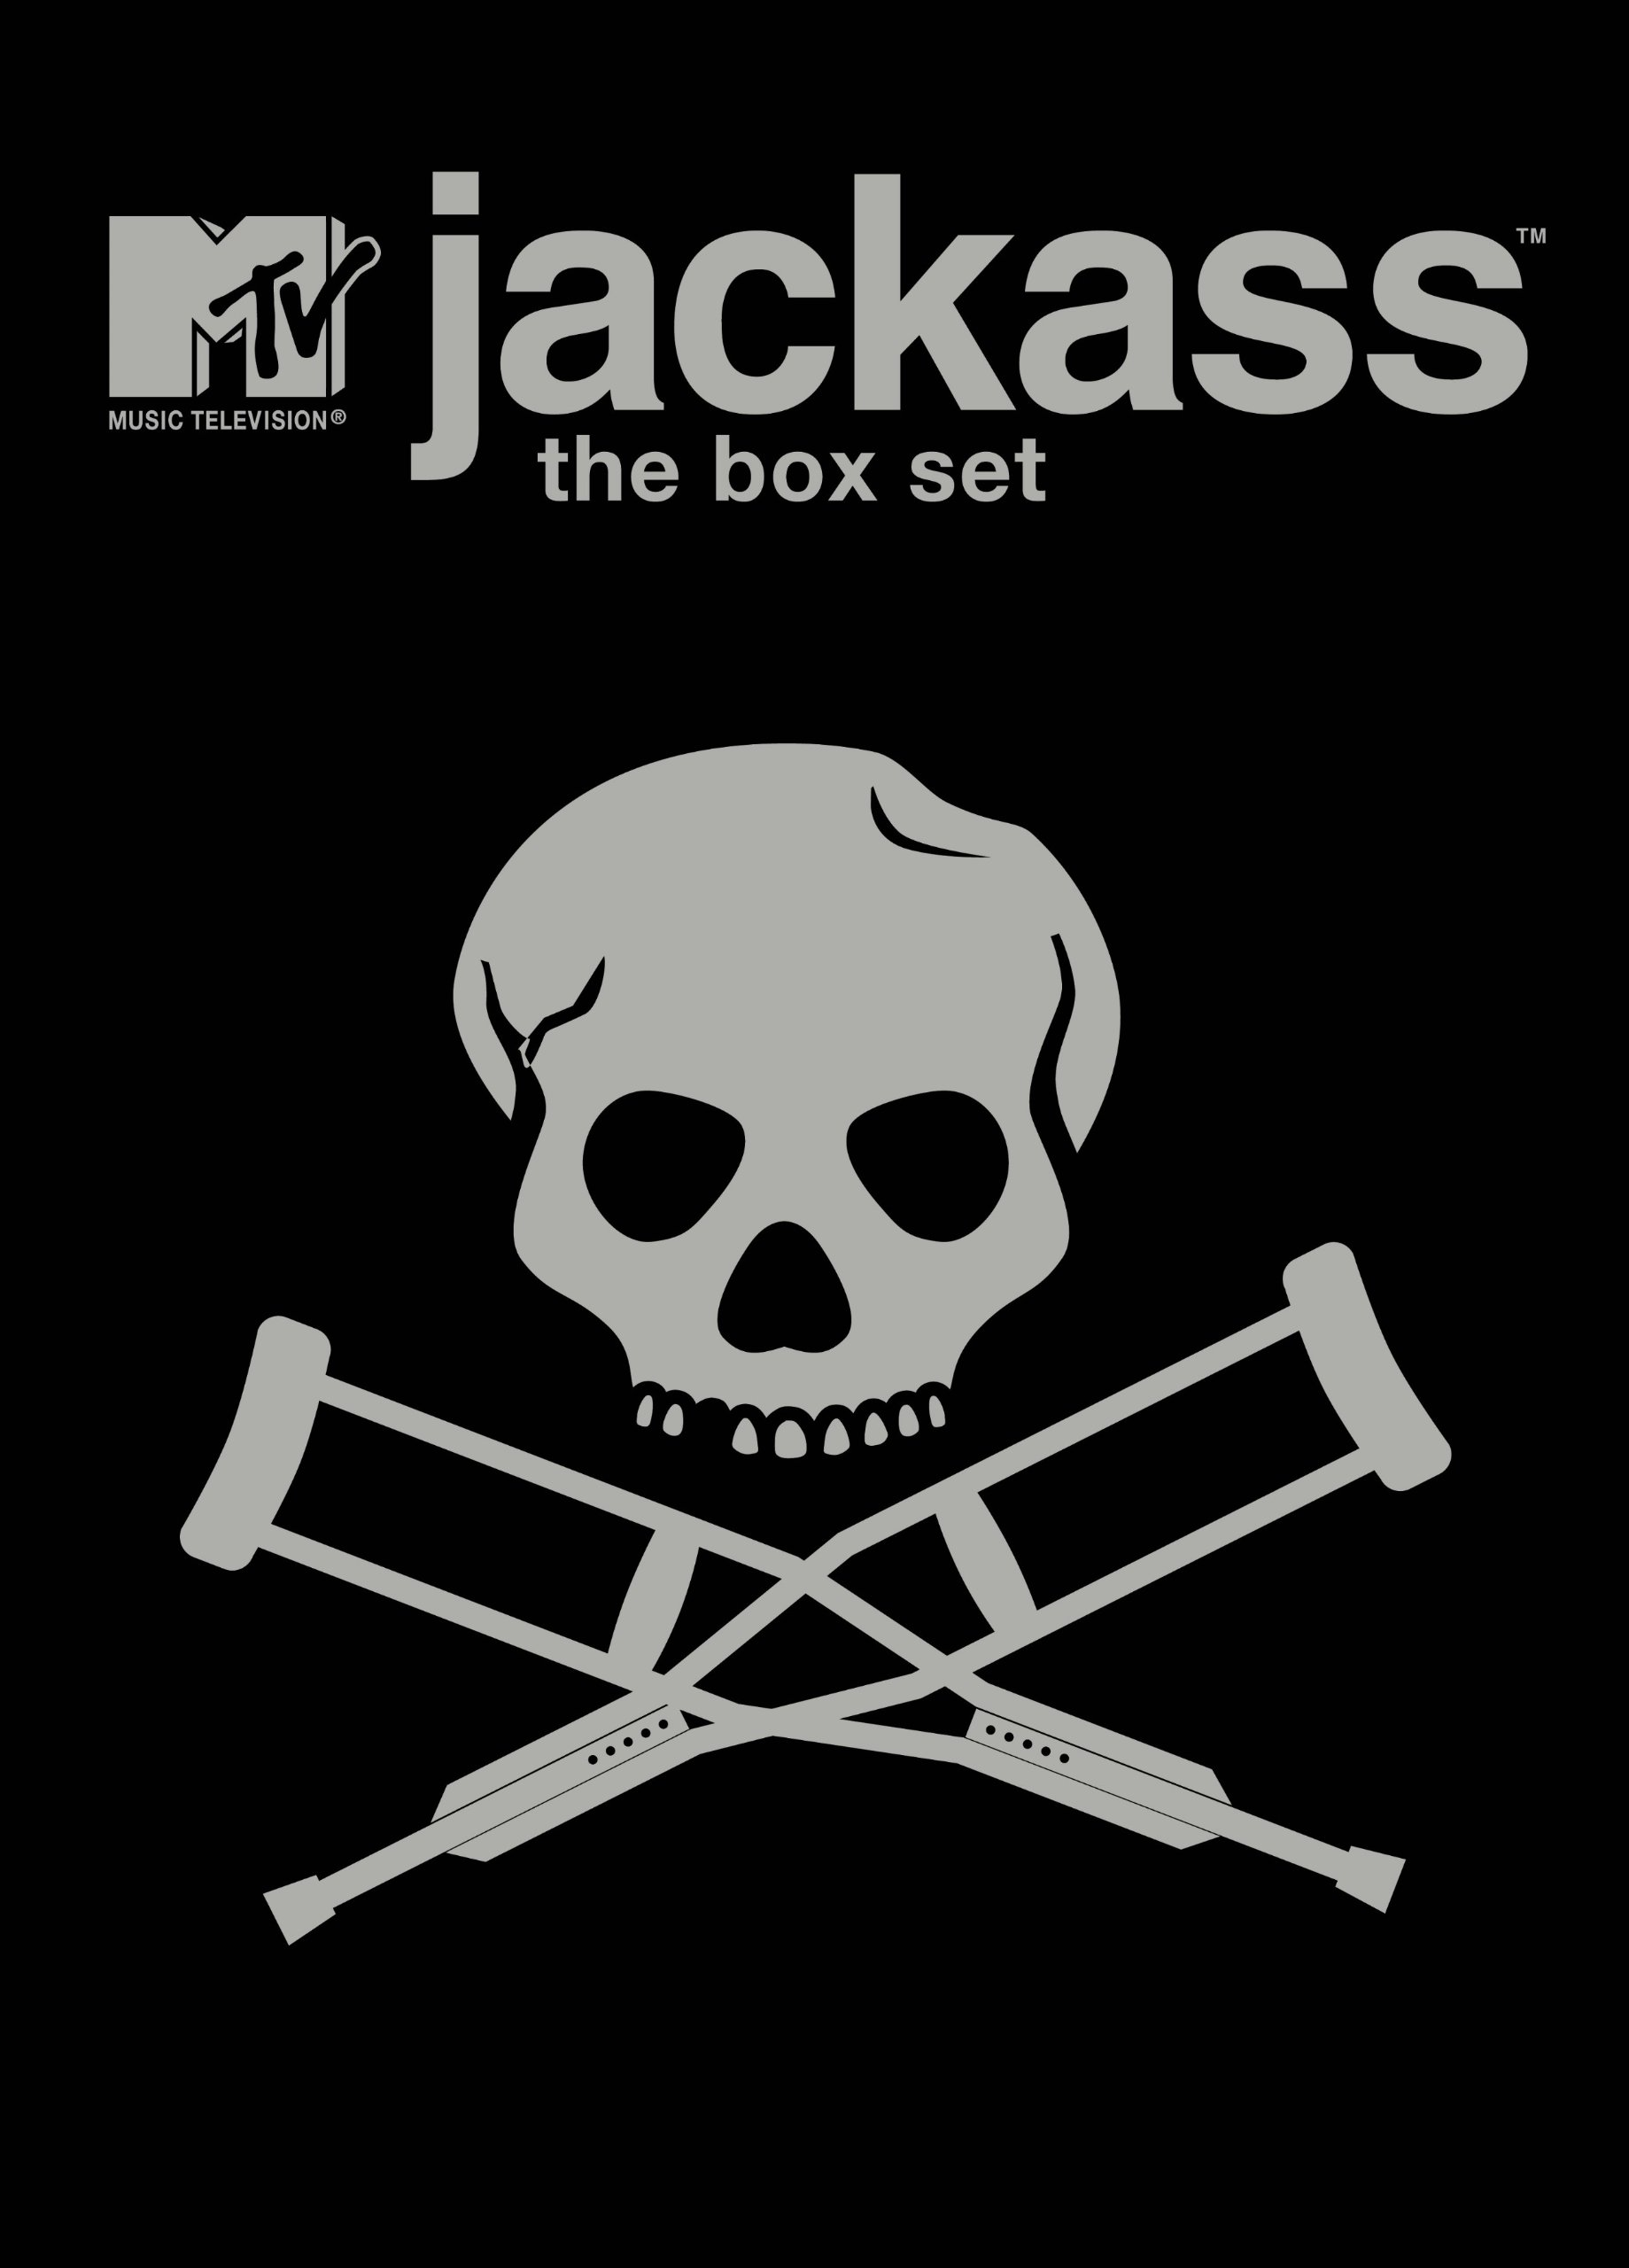 Jackass - The Box Set by Paramount